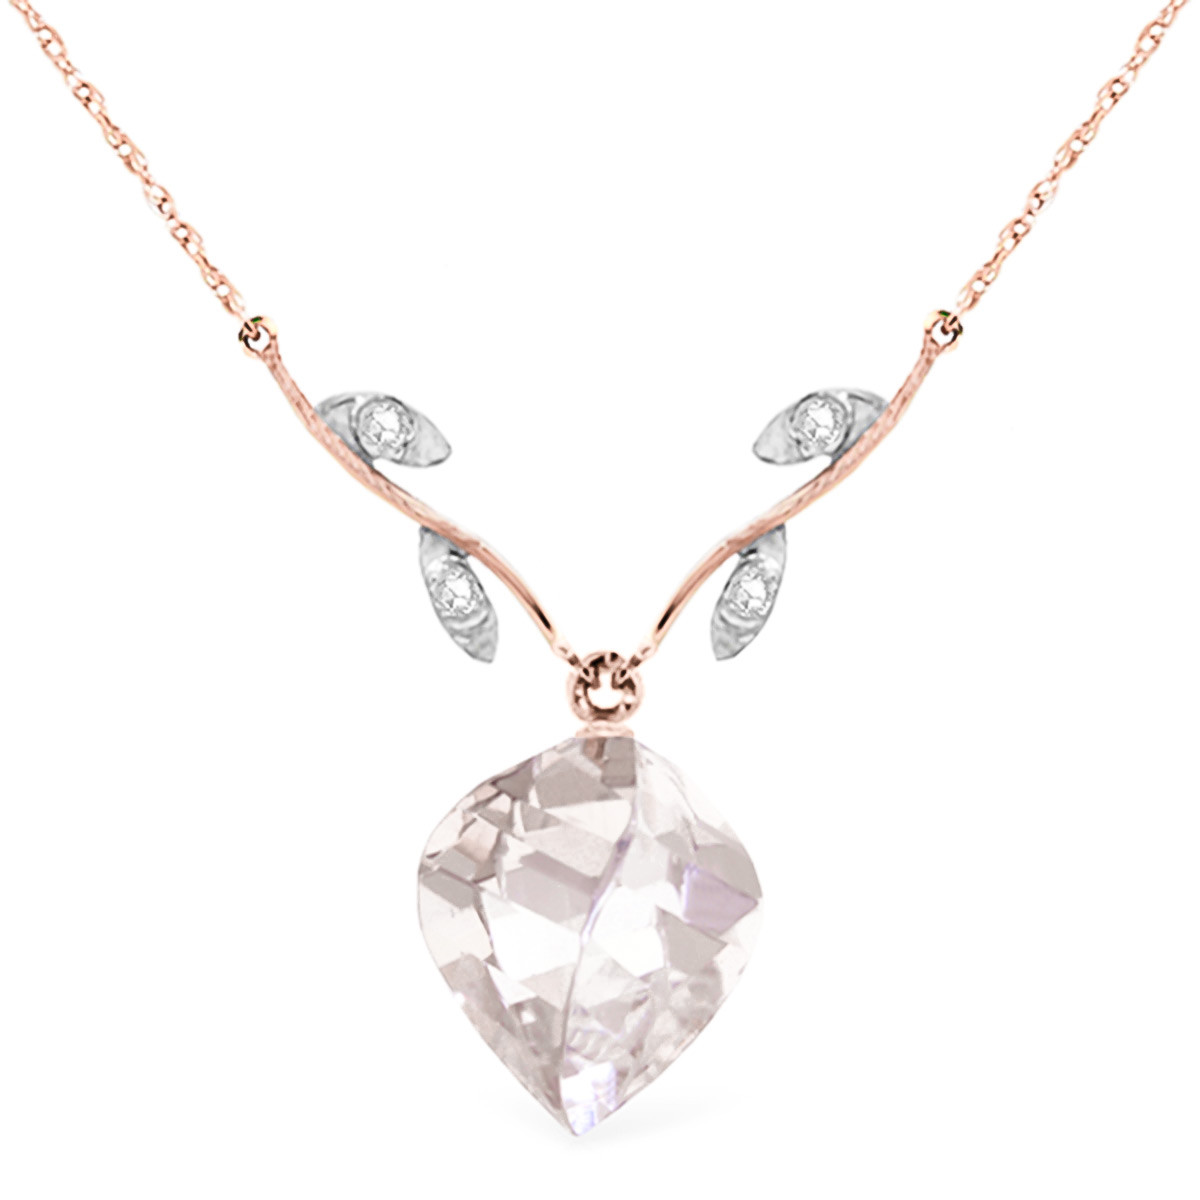 Twisted Briolette Cut White Topaz Pendant Necklace 12.82 ctw in 9ct Rose Gold